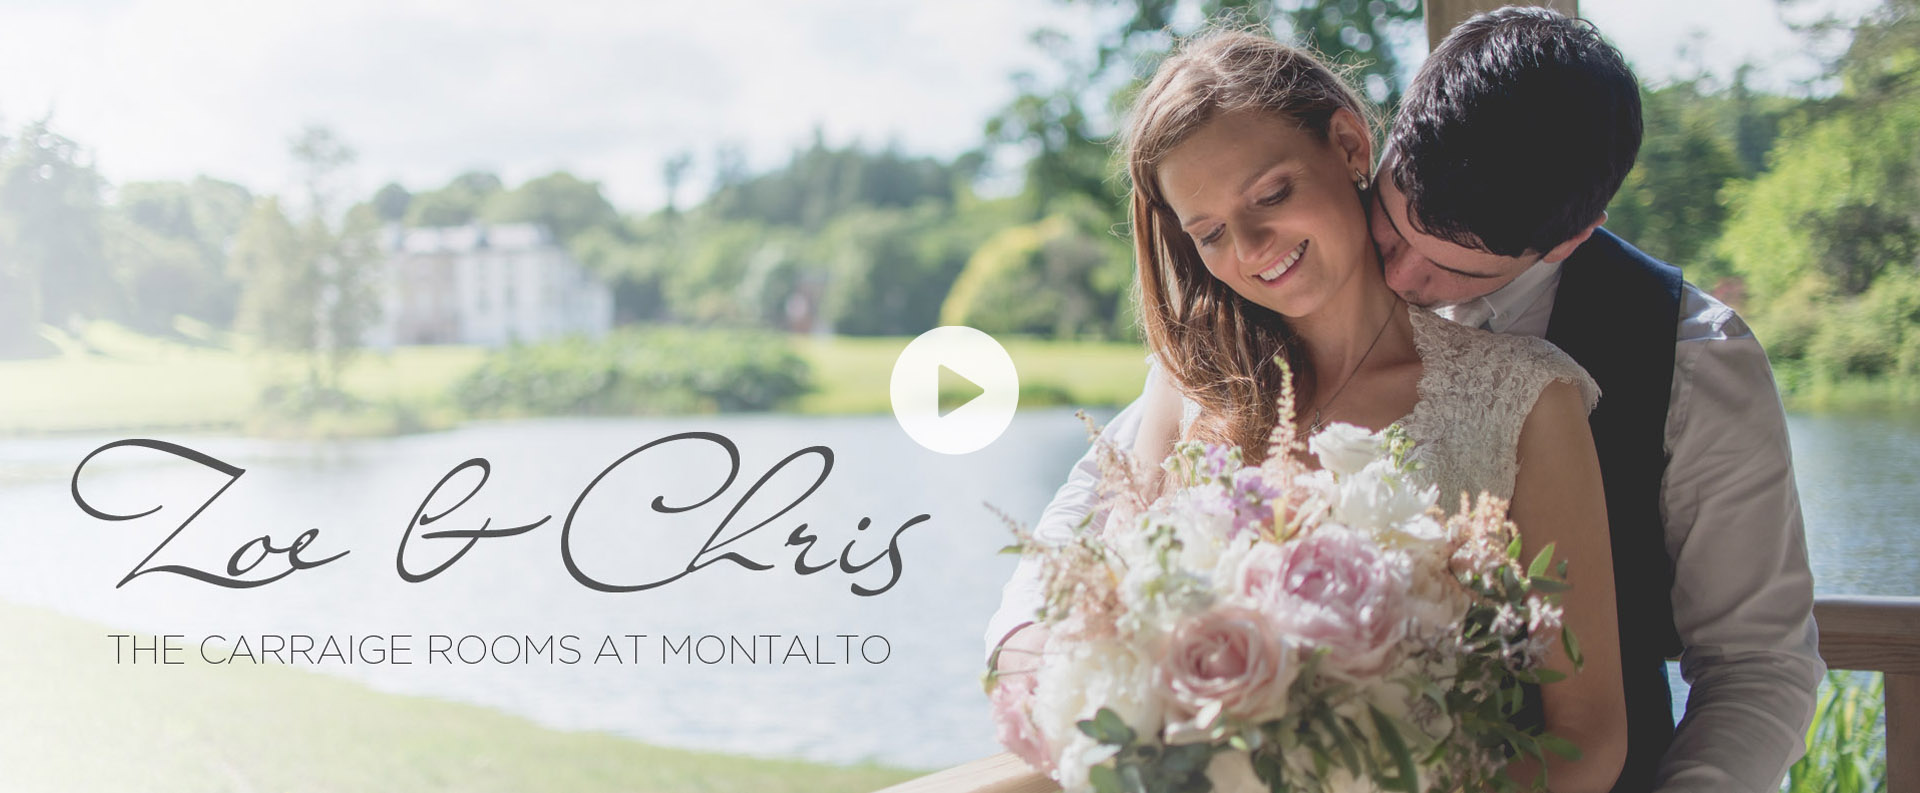 Zoe & Chris - The Carriage Rooms at Montalto wedding video